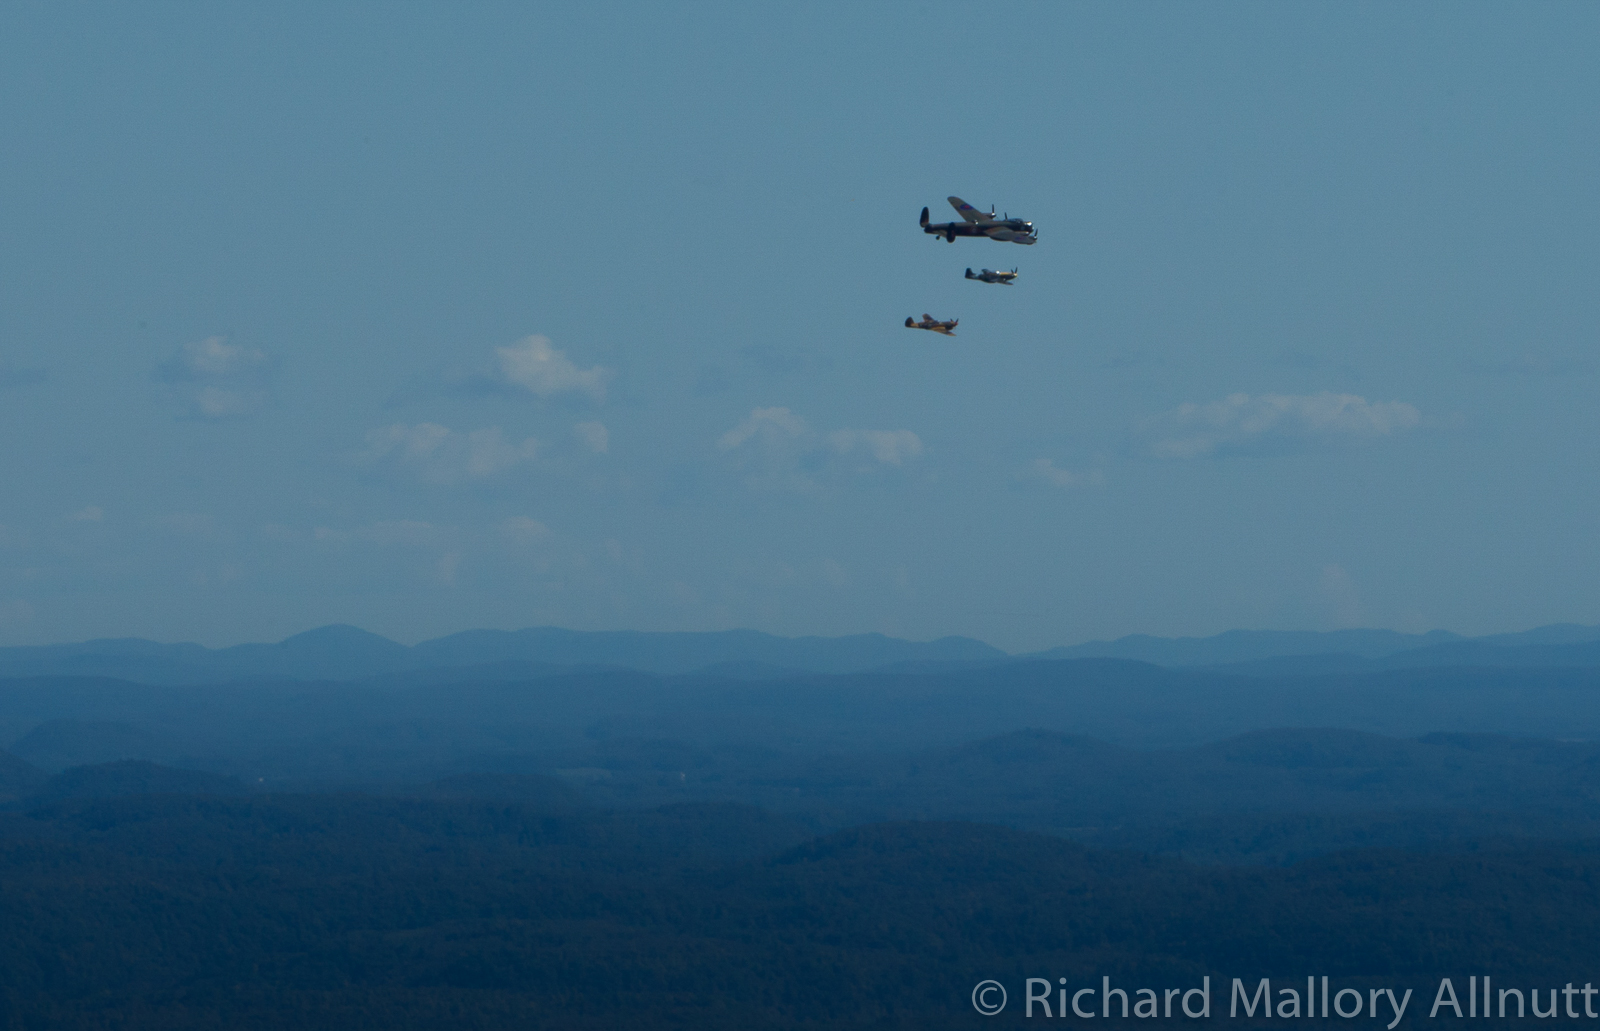 The Lancaster, Mustang and Kittyhawk over the Gatineau Hills. (photo by Richard Mallory Allnutt)